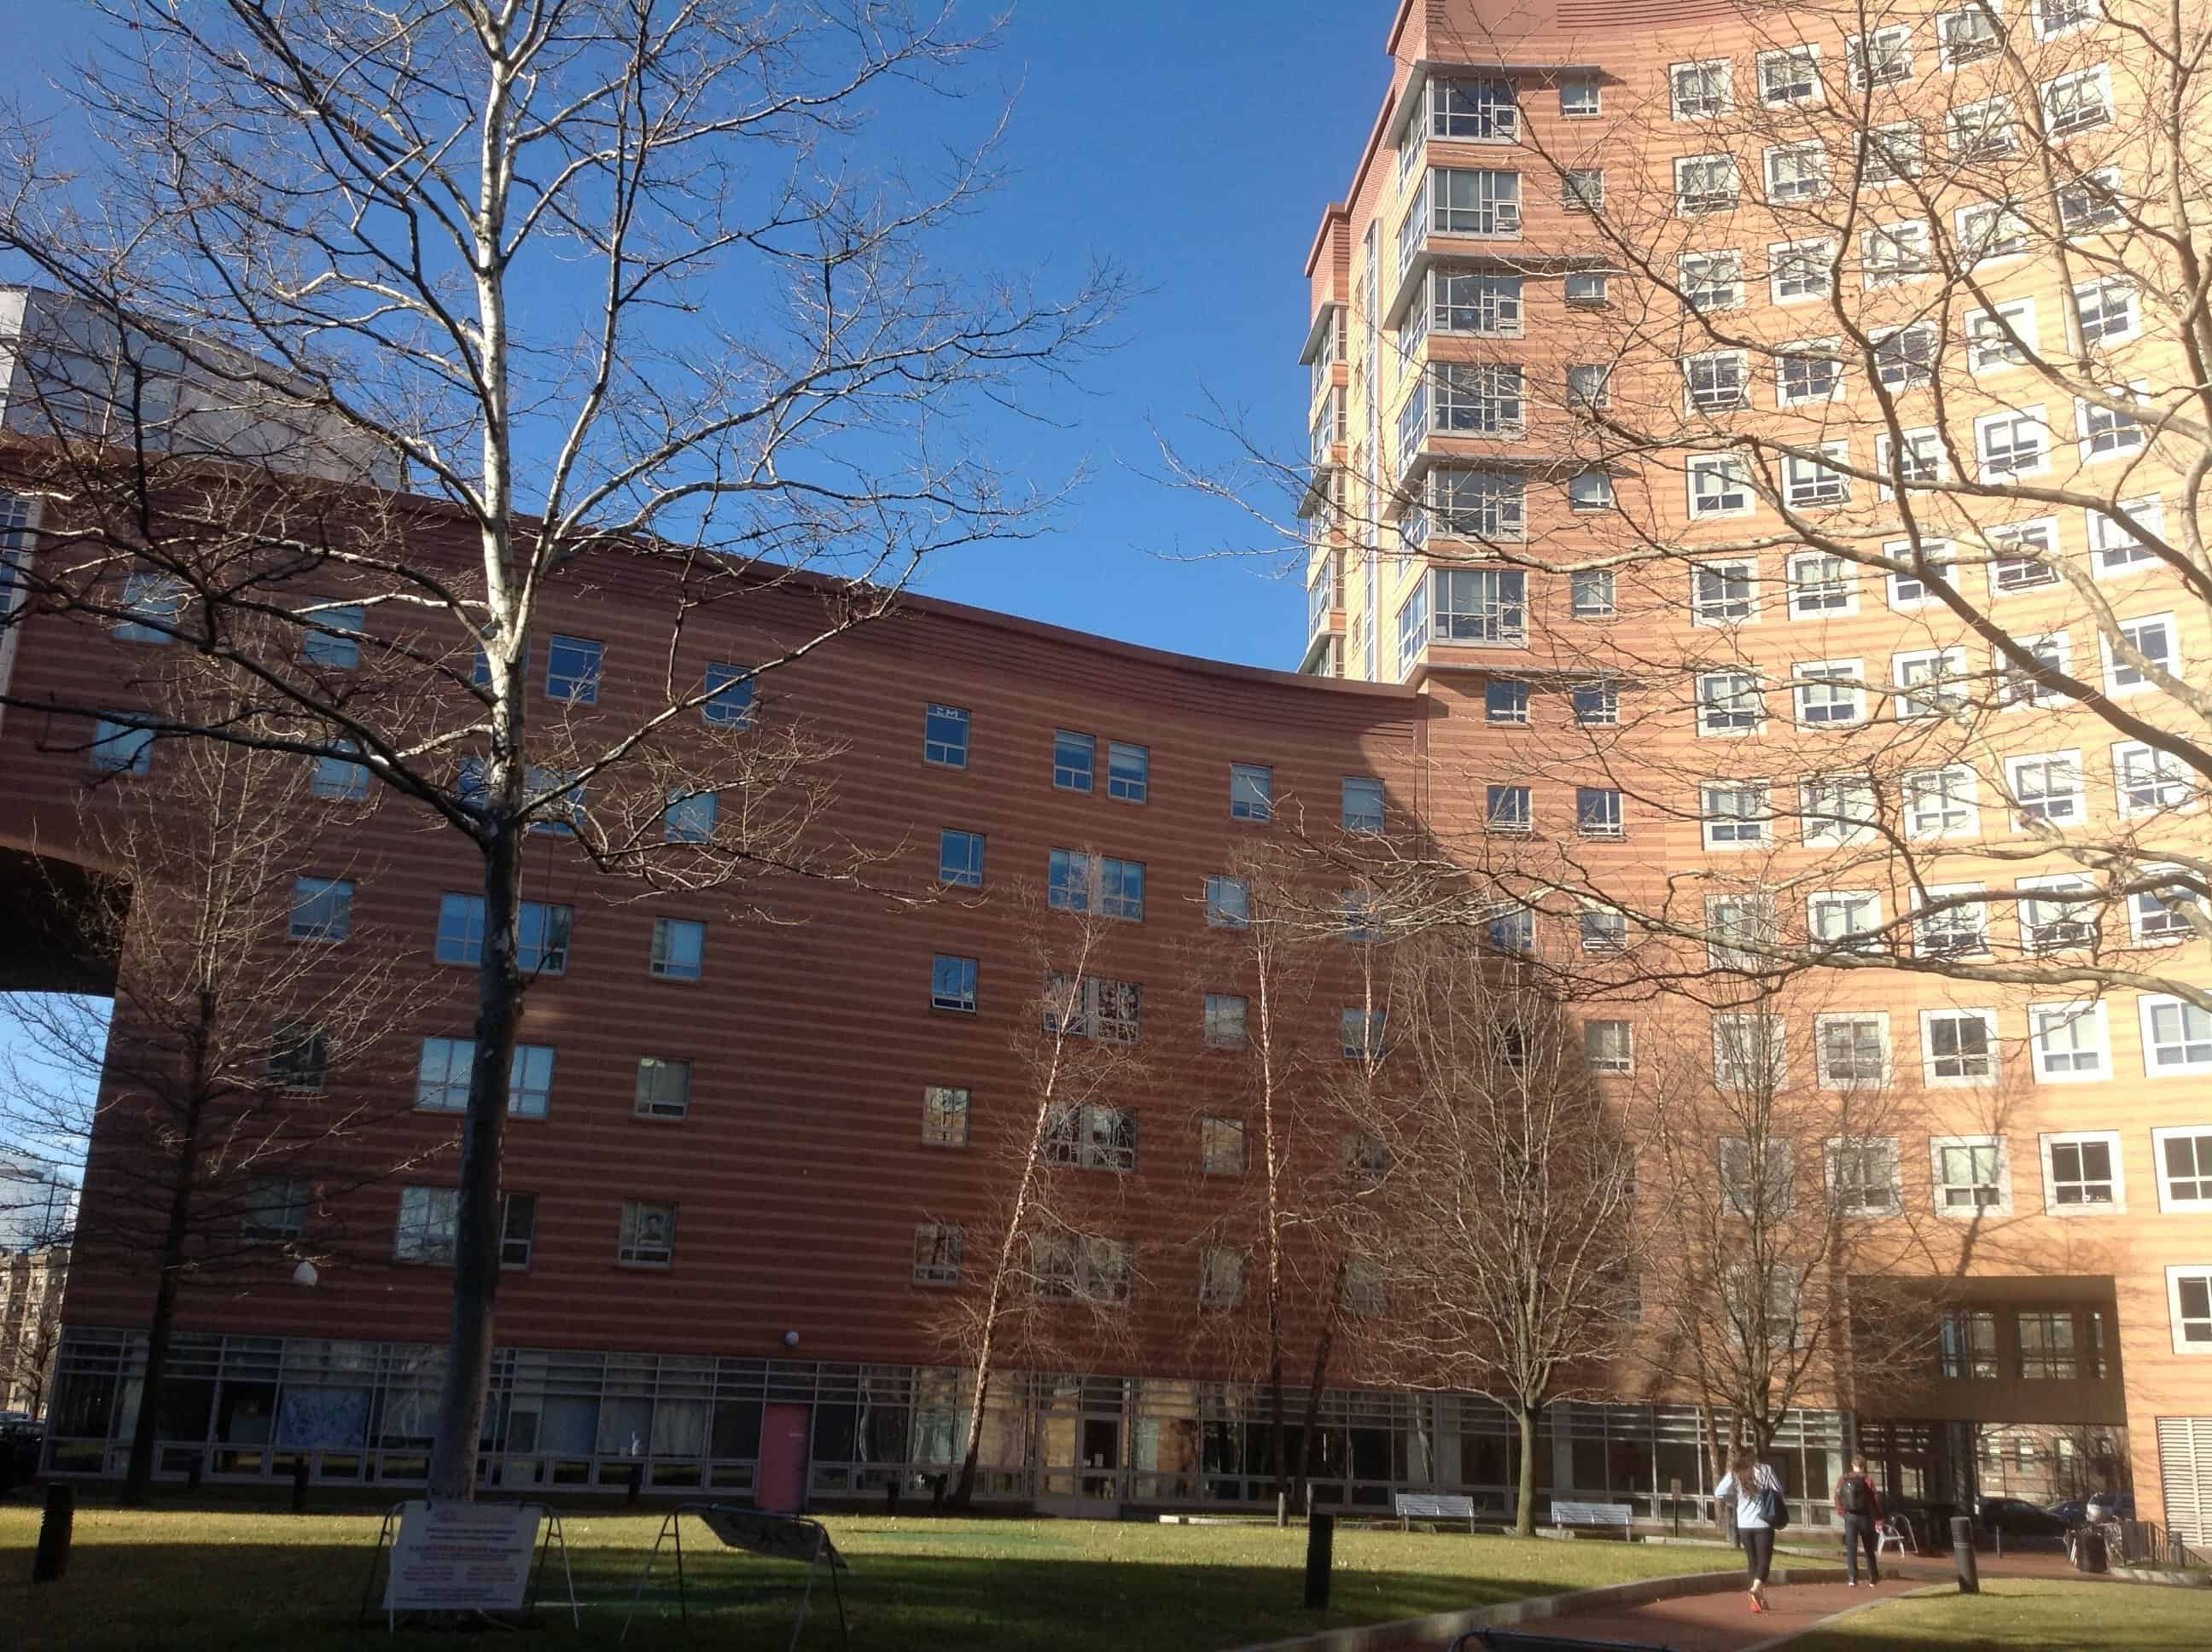 West Village upperclassman housing